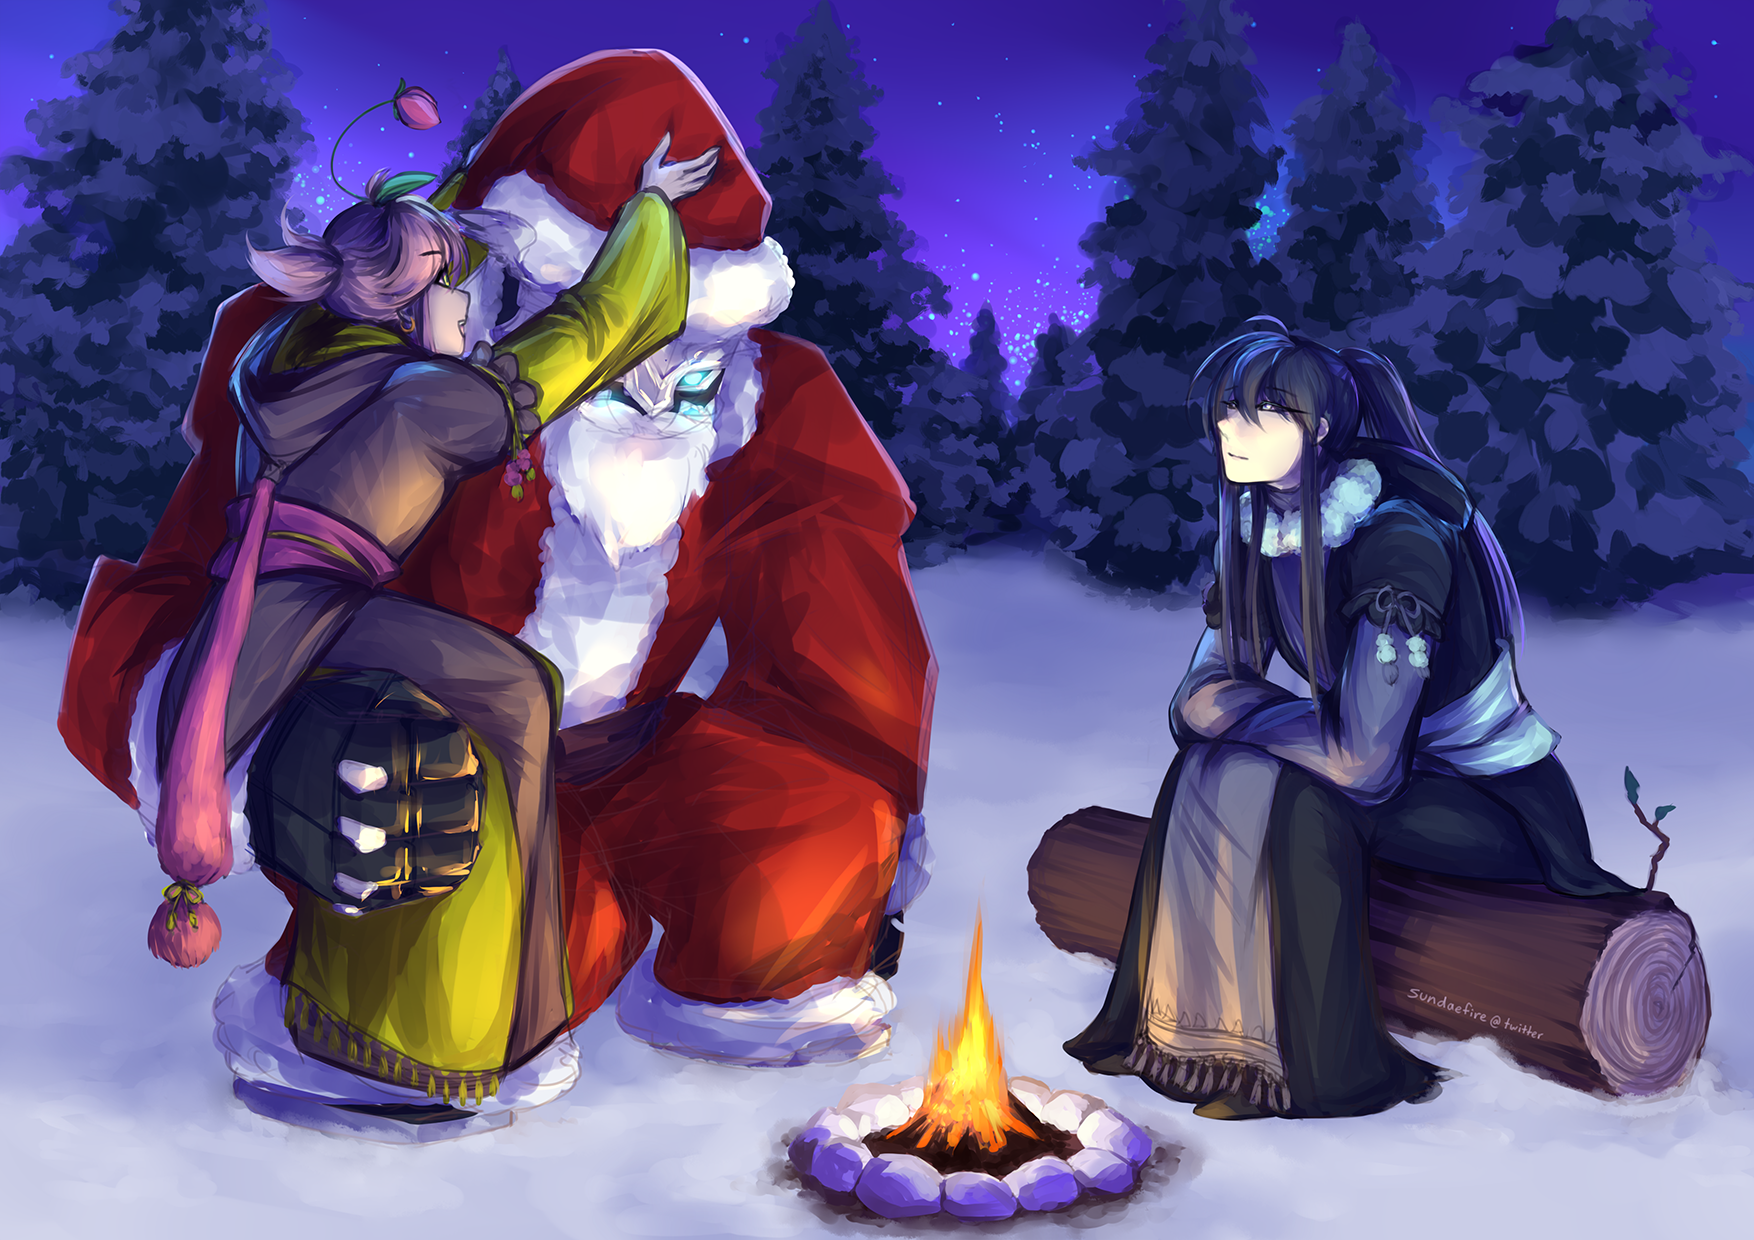 mabi_winter_contest_entry_by_sundaefire-dbxc7t6.png